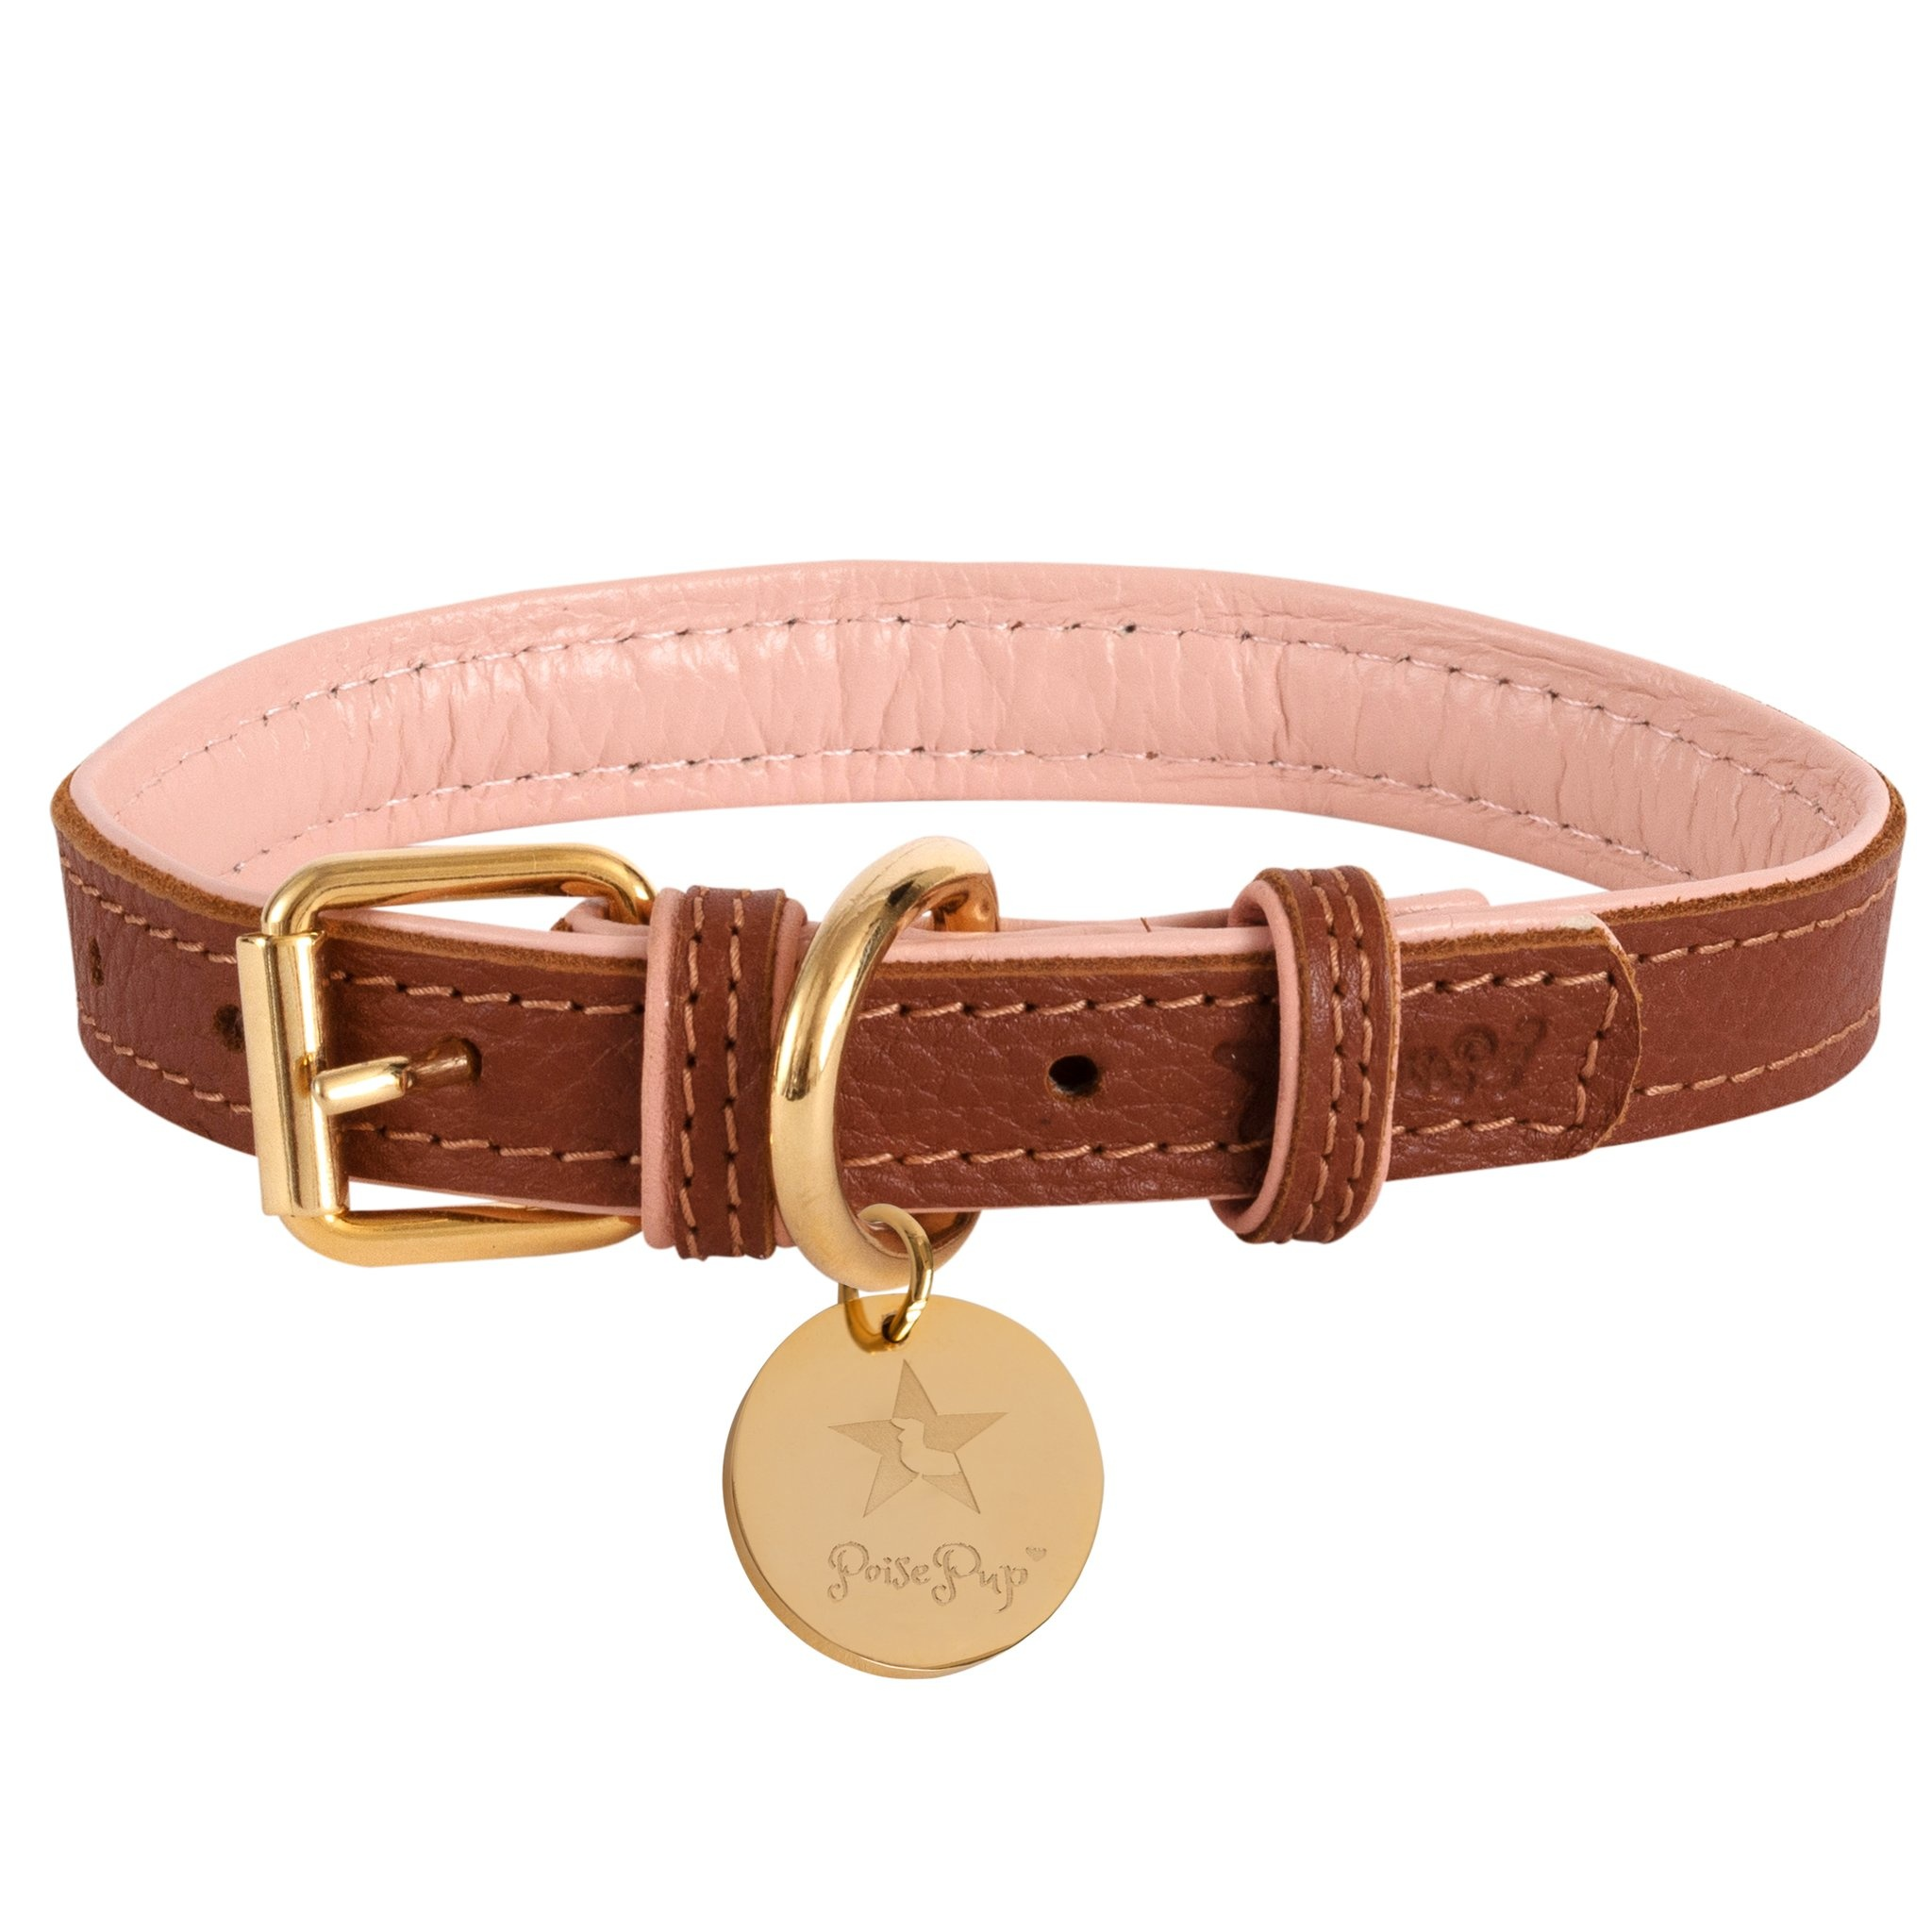 Poise Pup Collar Bella Rose Leather